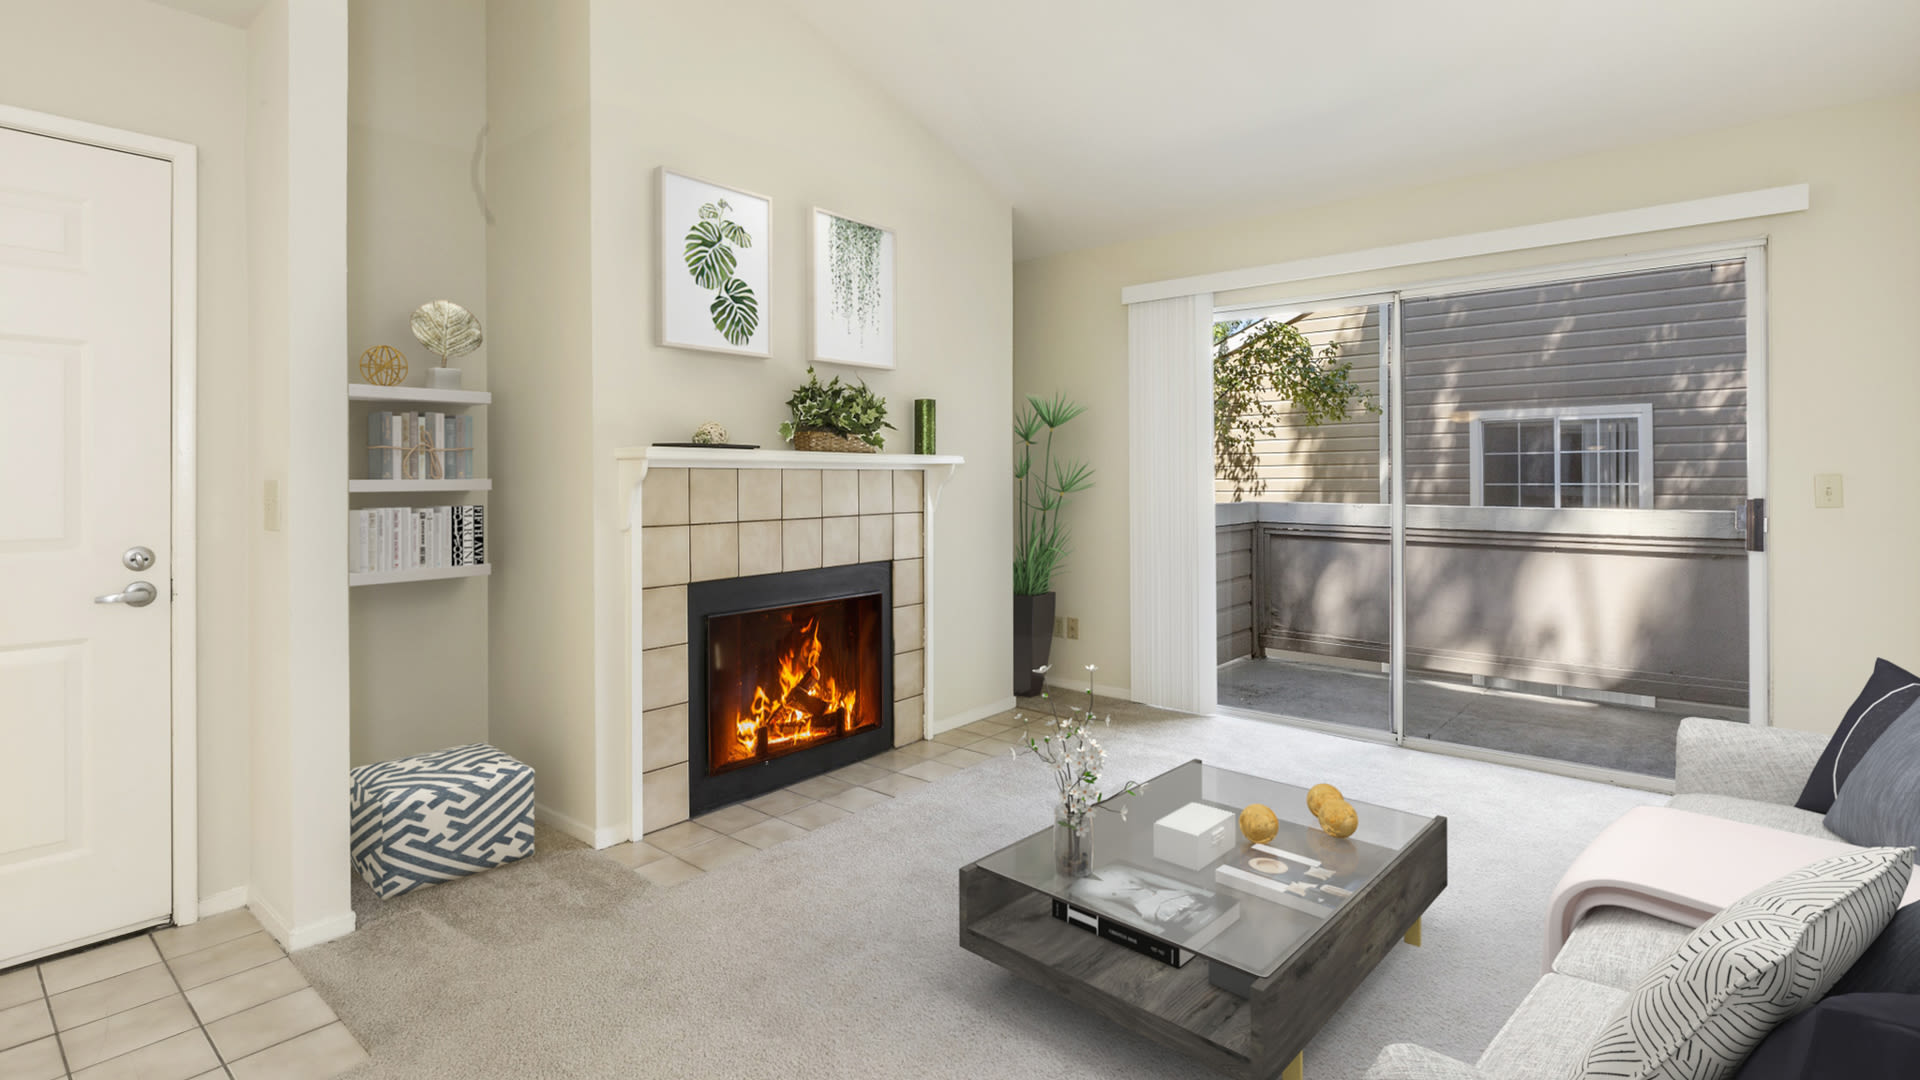 Canyon Creek Apartments - Carpeted Living Room with Wood-burning Fireplace and Balcony